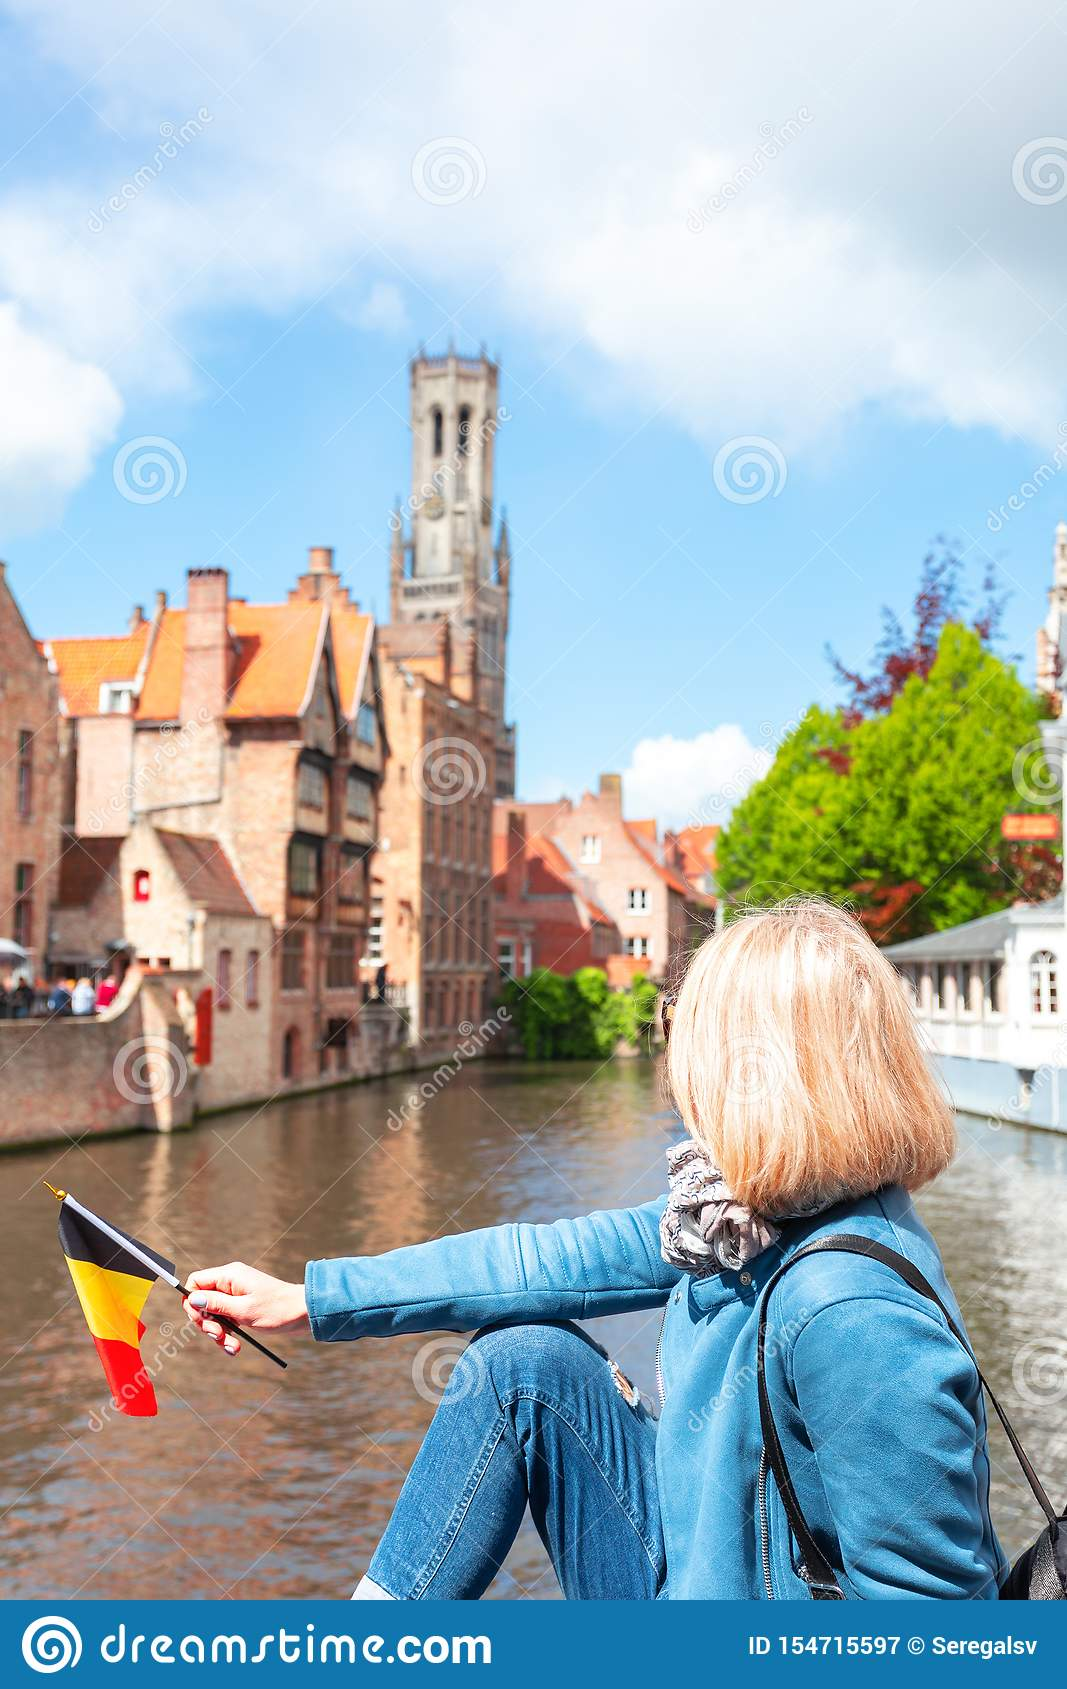 A young woman with the flag of Belgium in her hands is enjoying the view of the canals in the historical center of